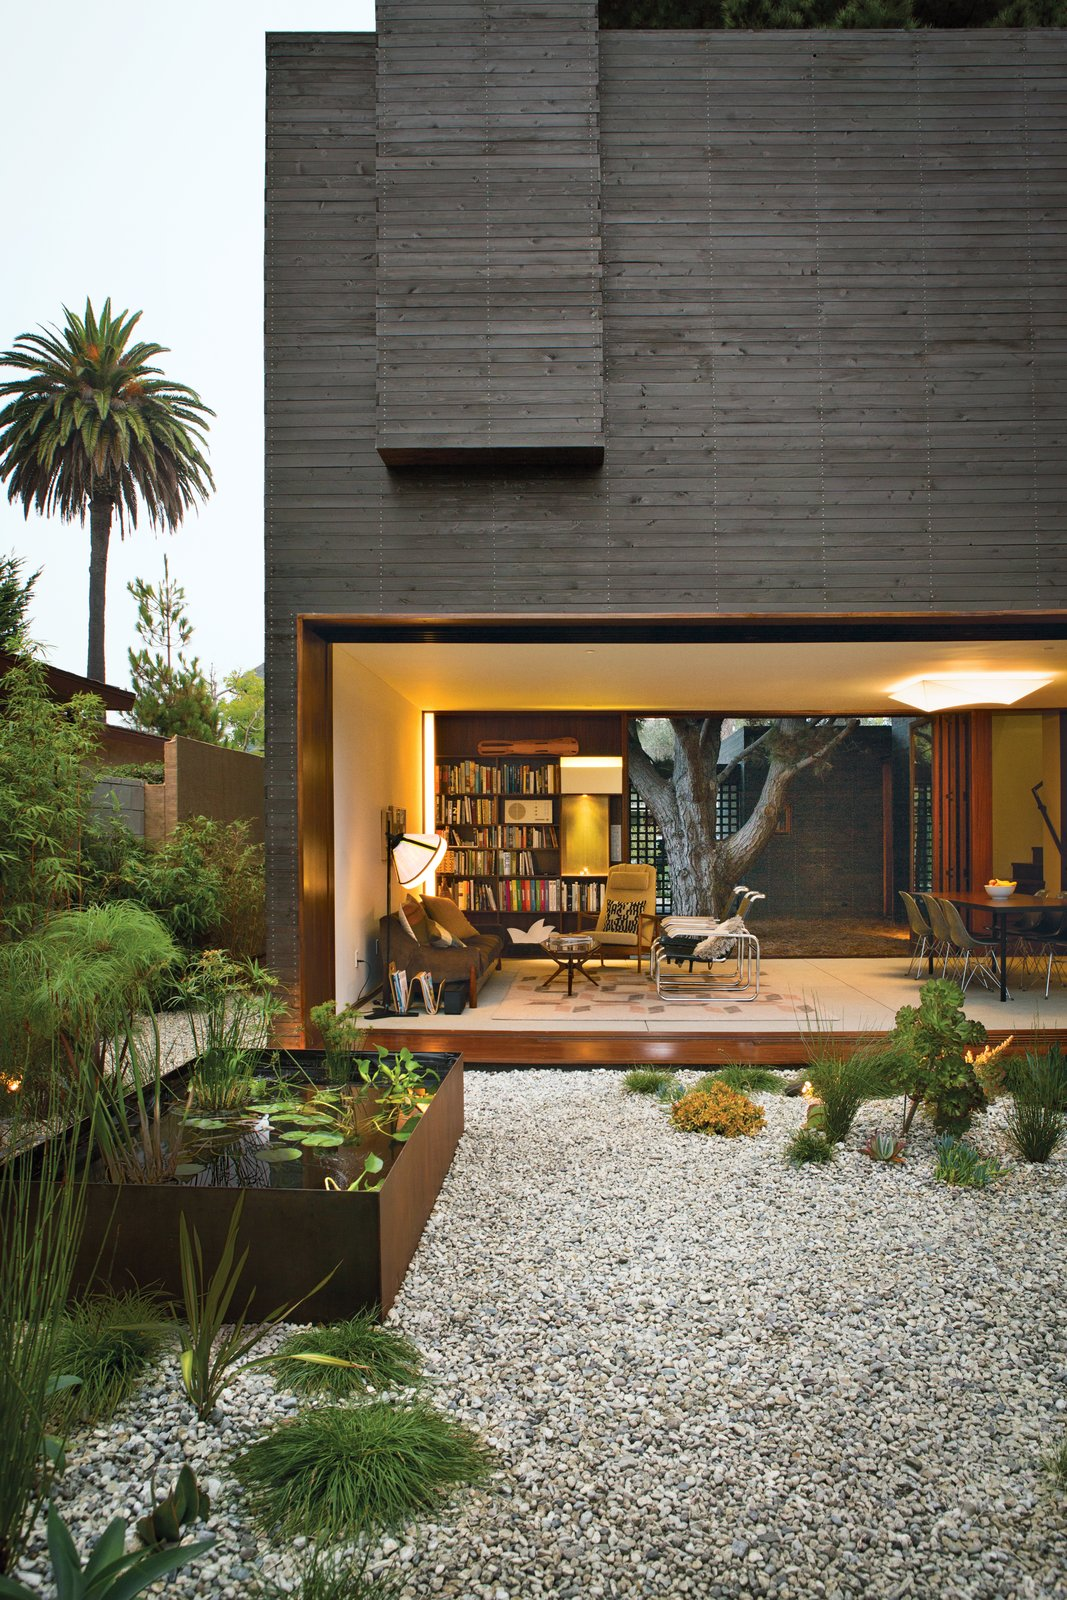 Outdoor, Gardens, Back Yard, Trees, Walkways, Hardscapes, and Garden Architectural designer Sebastian Mariscal and project manager Jeff Svitak created a house in Venice, California, for Michael and Tamami Sylvester. Known as Dwell Home Venice for its role as an exemplification of modern architecture, the house is an homage to indoor-outdoor living. Photo by Coral von Zumwalt.  Photo 1 of 10 in A Modern Bungalow in Venice Beach